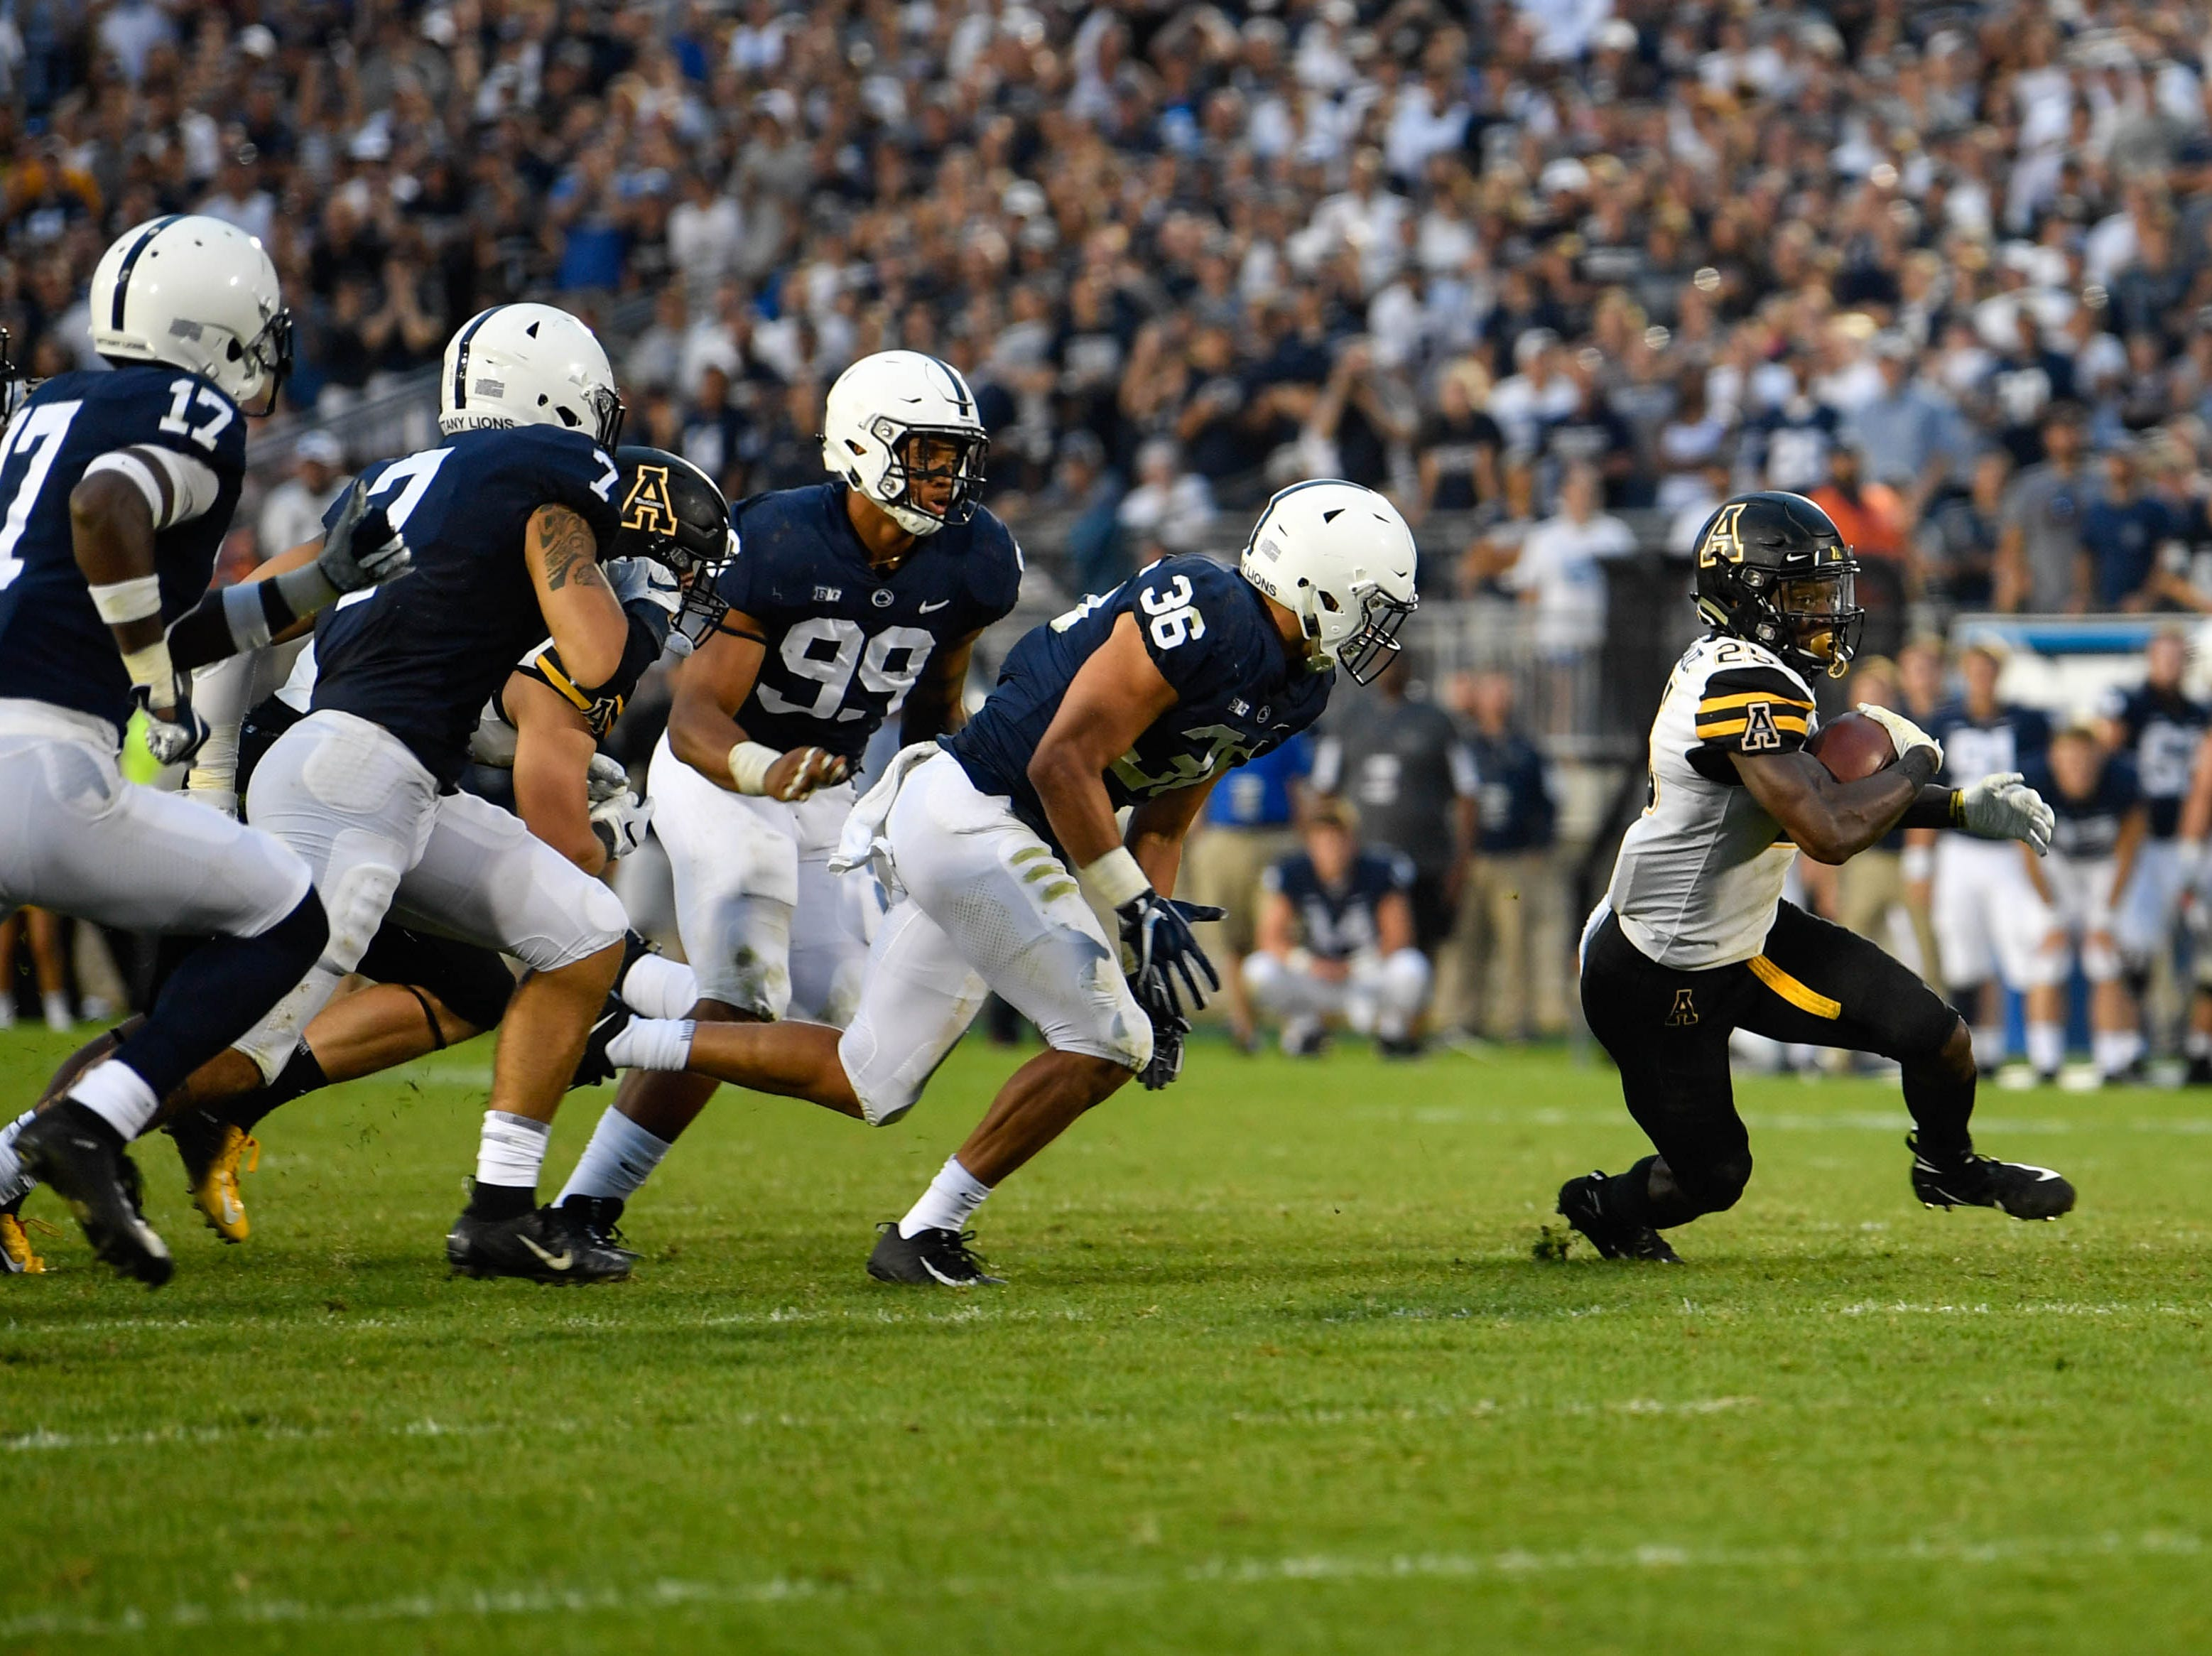 Penn State closes in on Jalin Moore as he tries to evade tackle in Beaver Stadium.